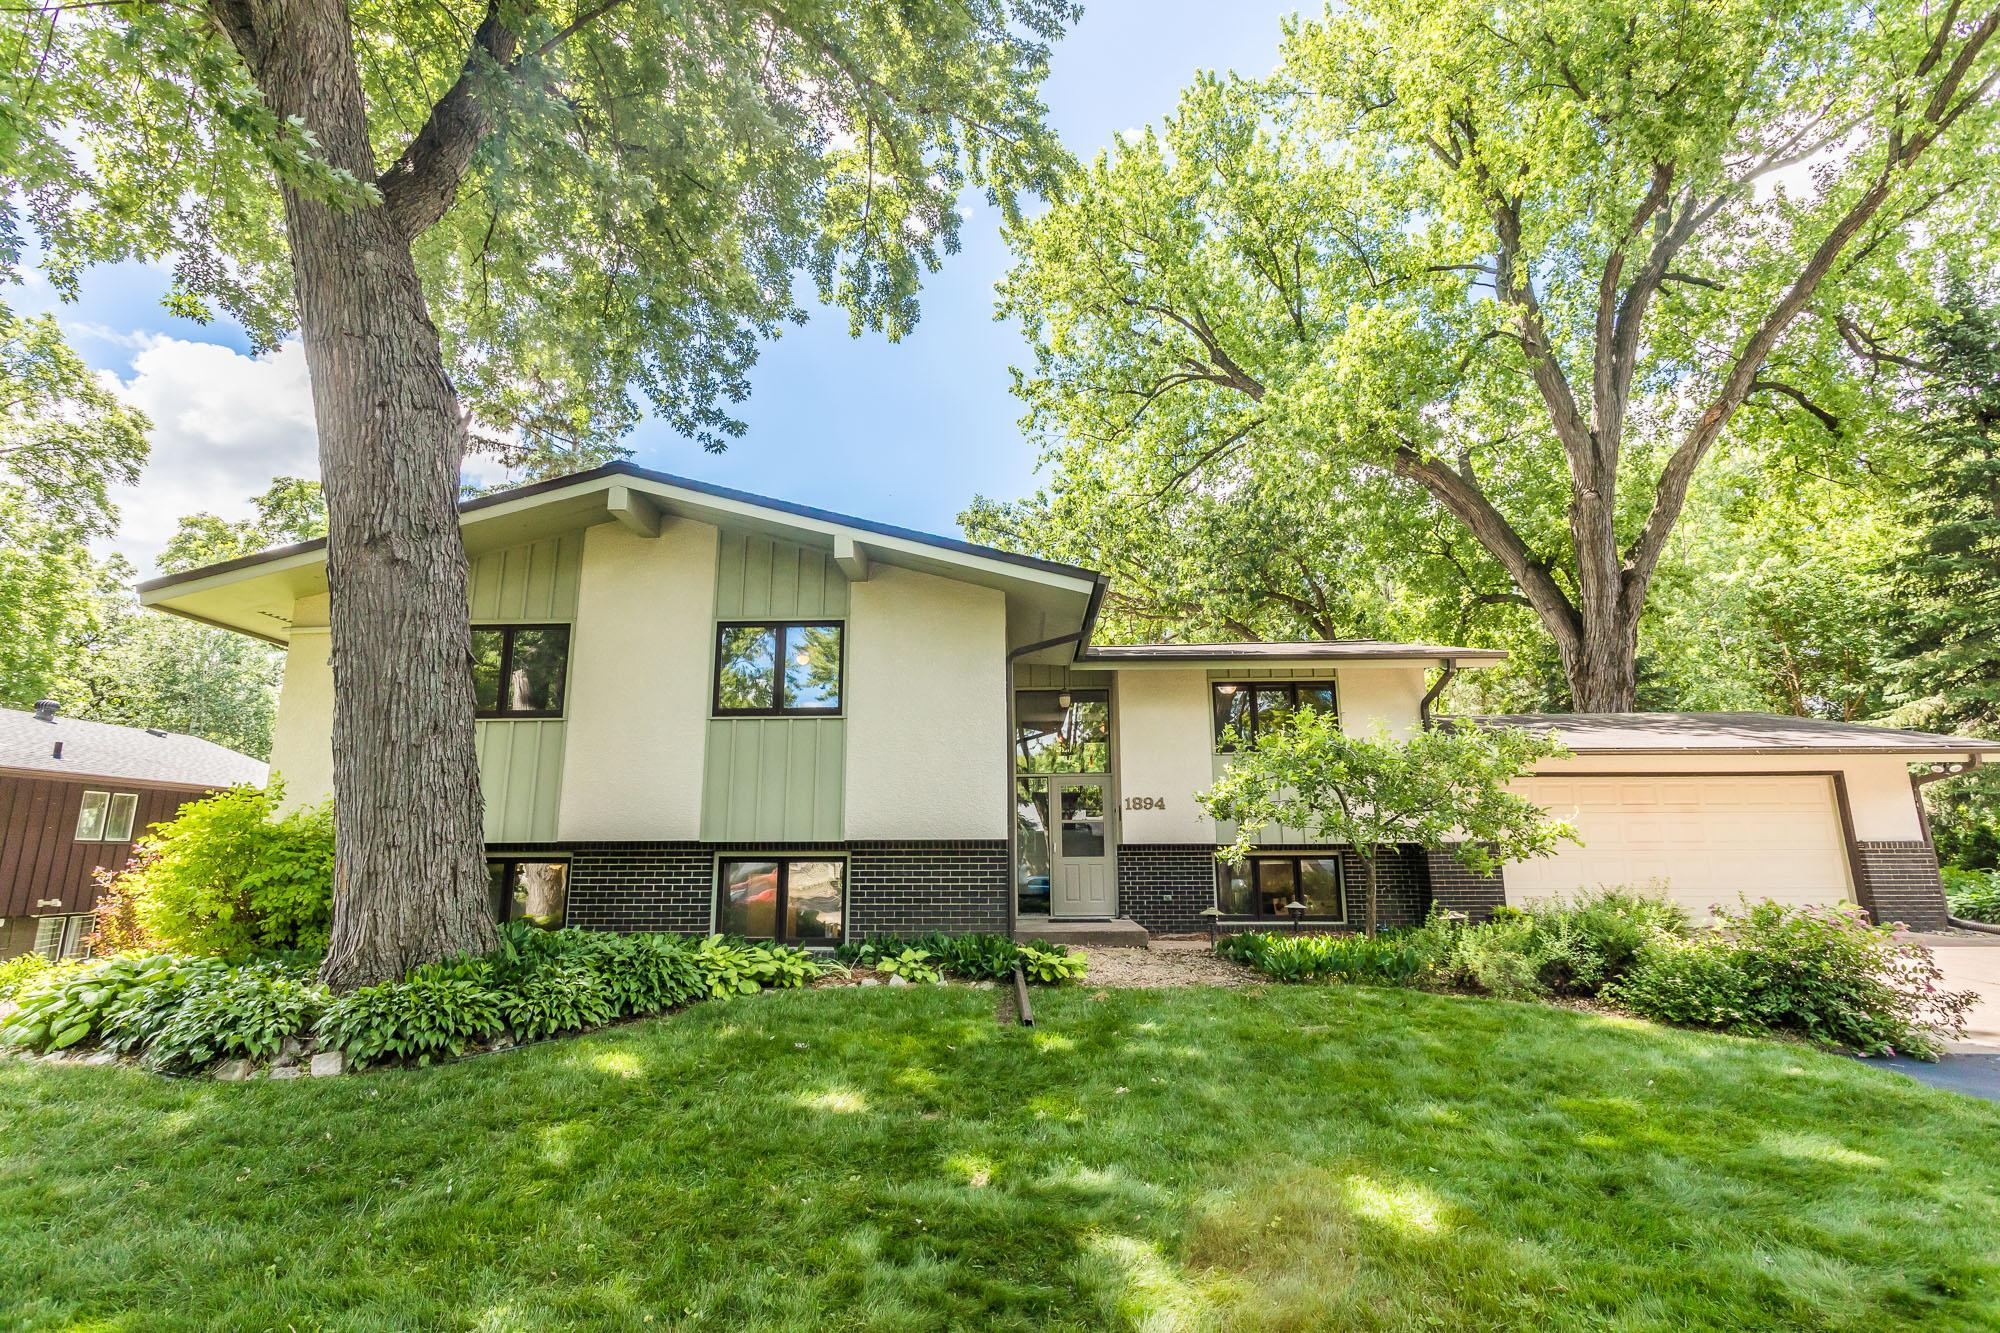 1894 Stowe Property Photo - Arden Hills, MN real estate listing